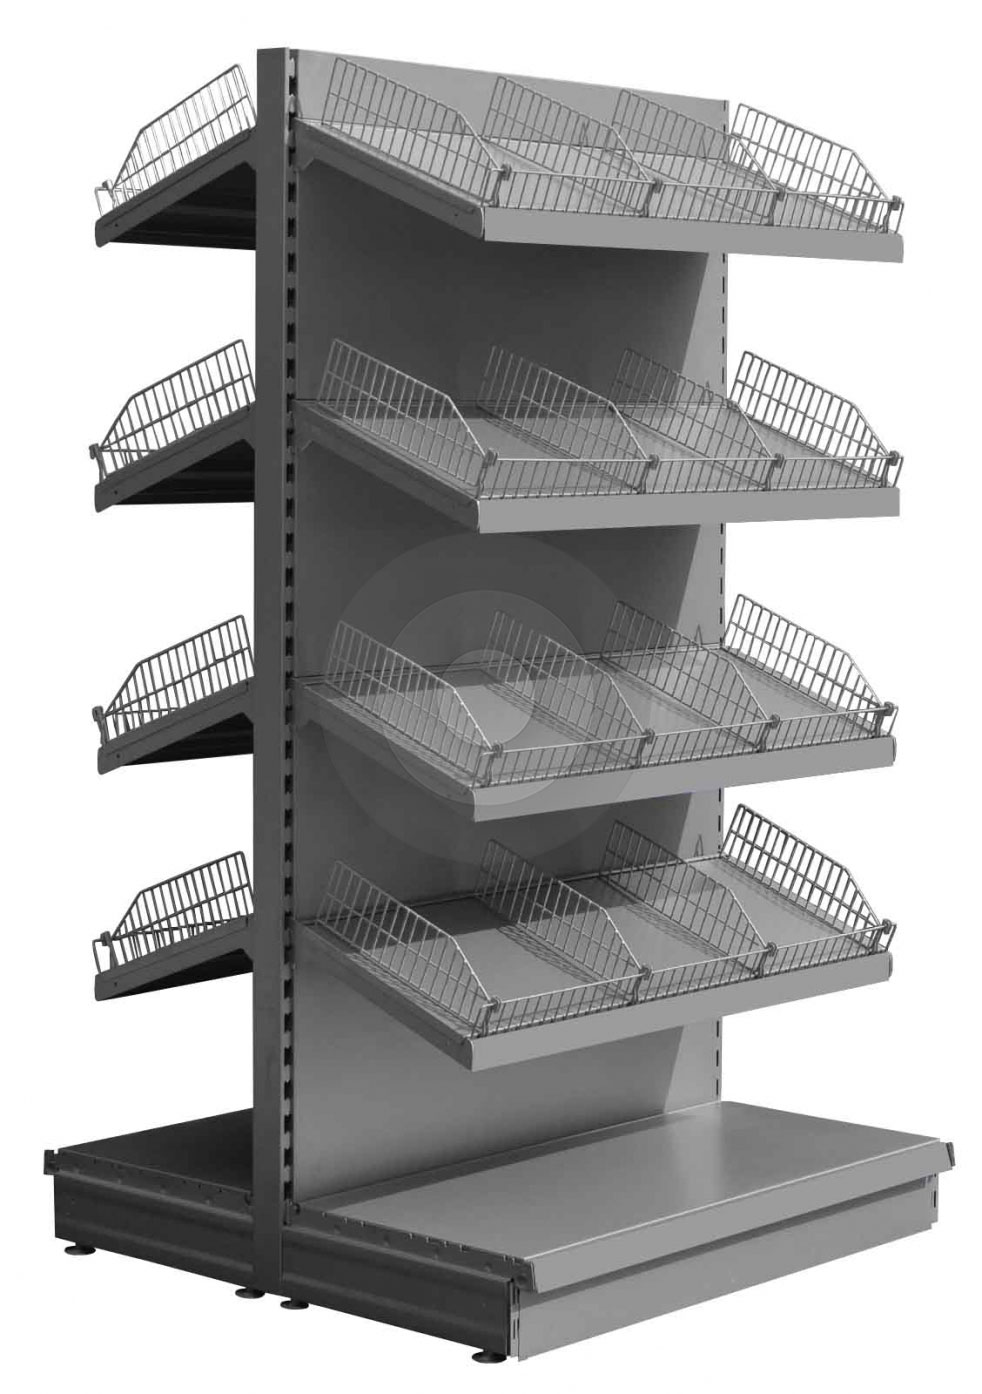 Silver Shop Shelving with Wire Risers & Dividers